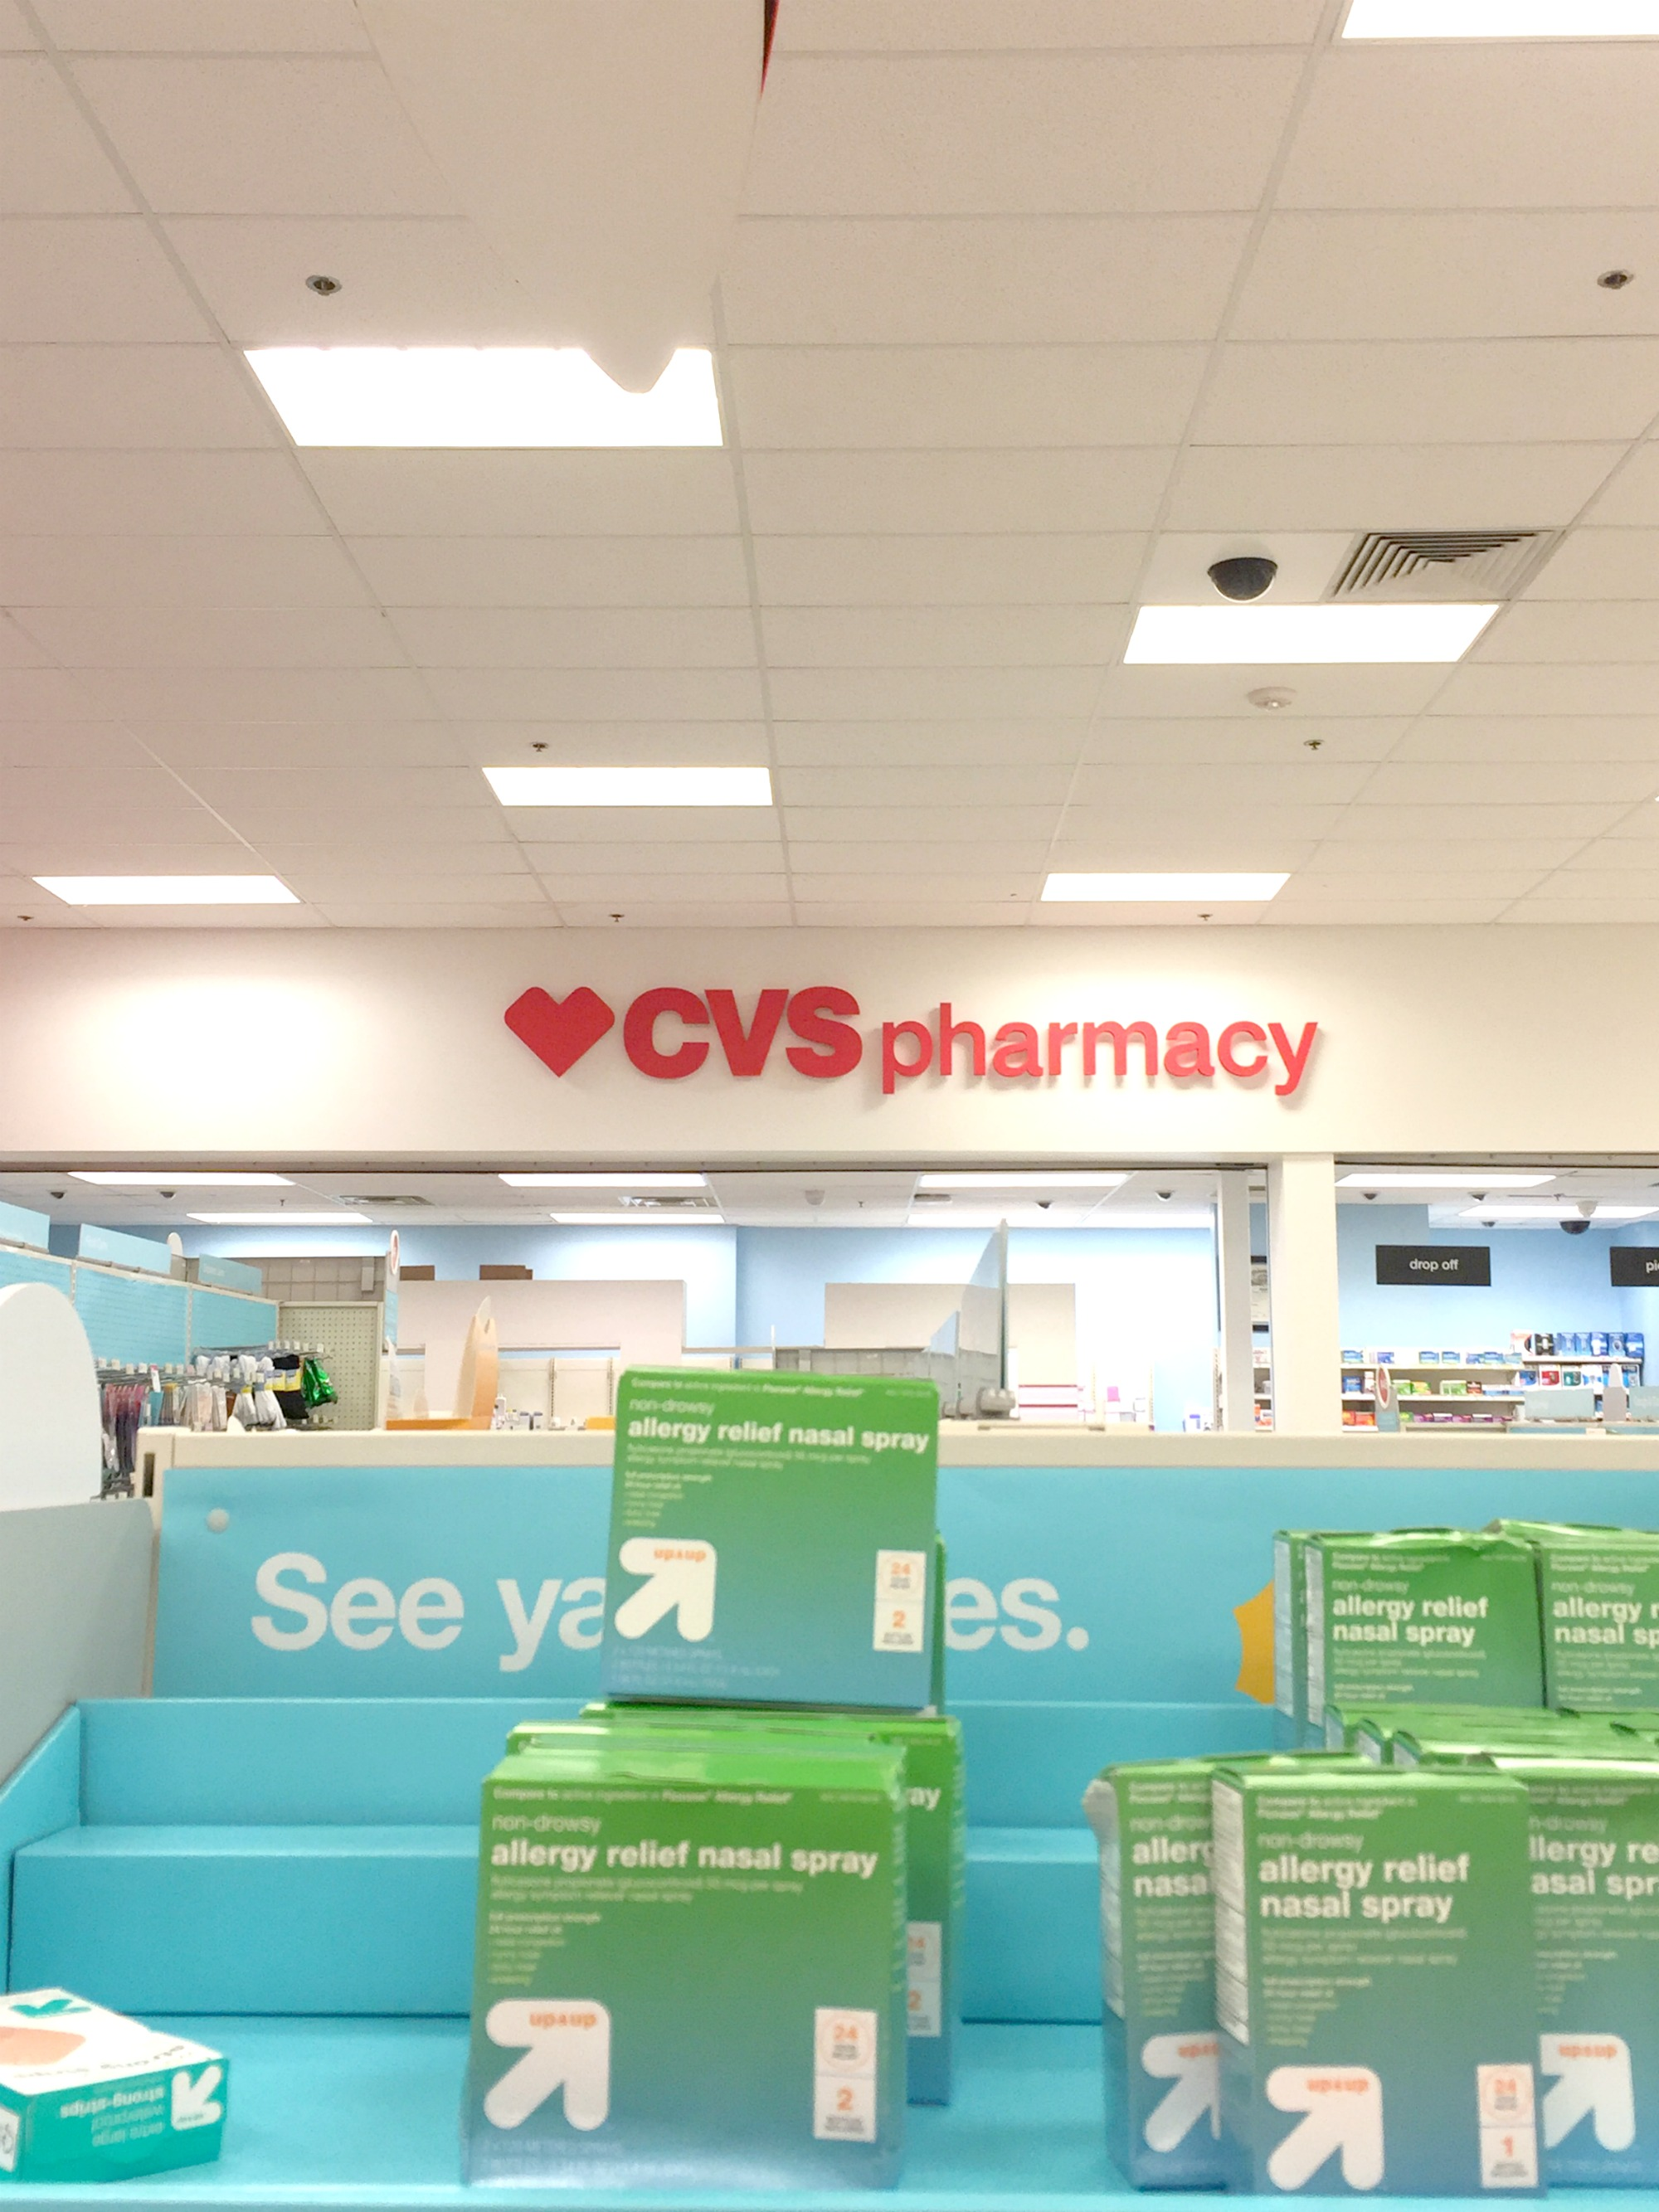 You can now find CVS Pharmacy inside Target stores nationwide. See why the CVS Pharmacy and Target partnership is good for CVS shoppers and Target shoppers alike.